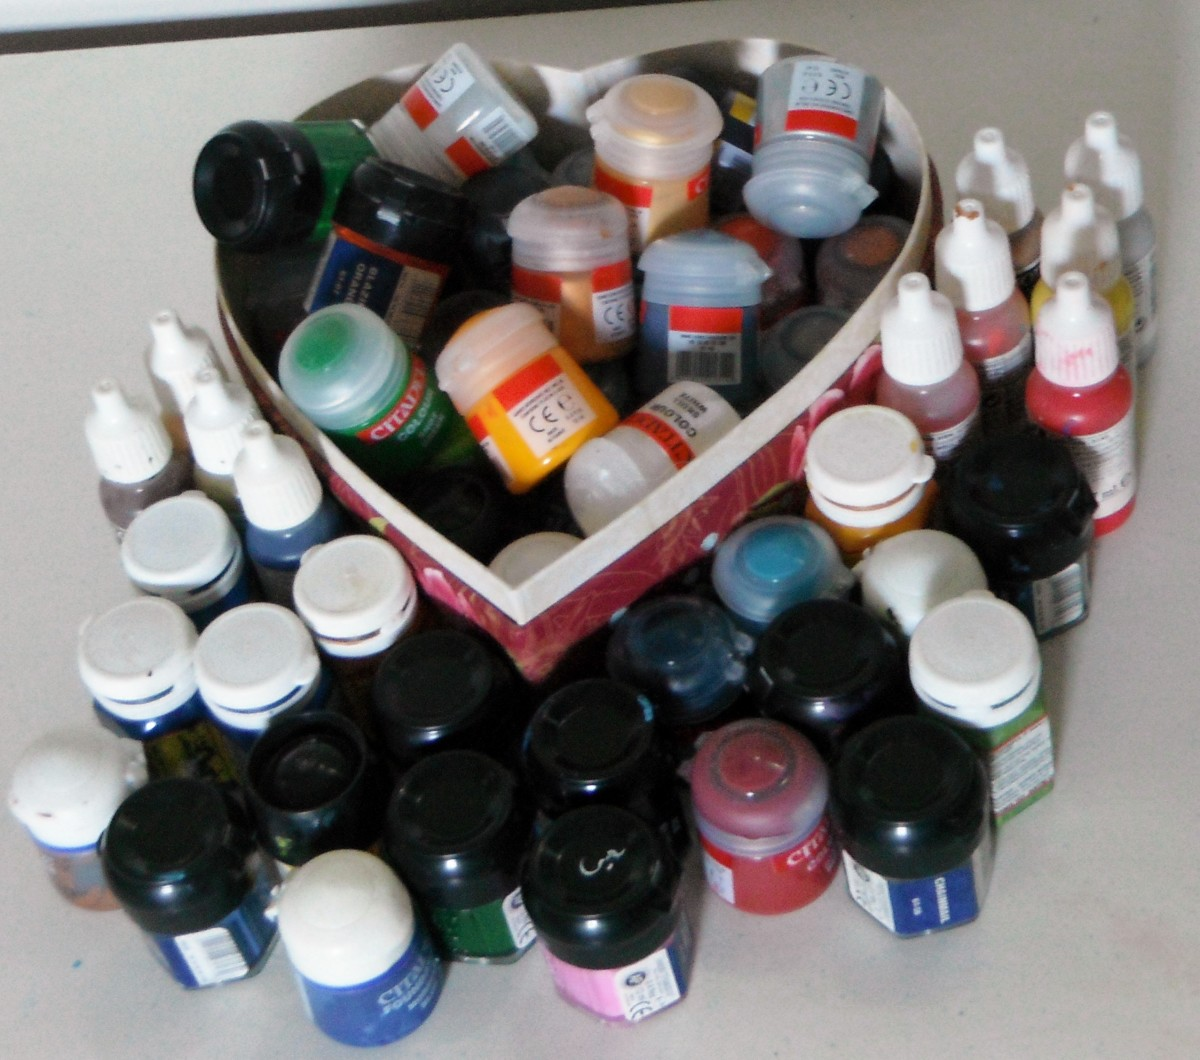 Paints for miniature painting. These are only the paints I use most often, but you don't need this much just to get started.